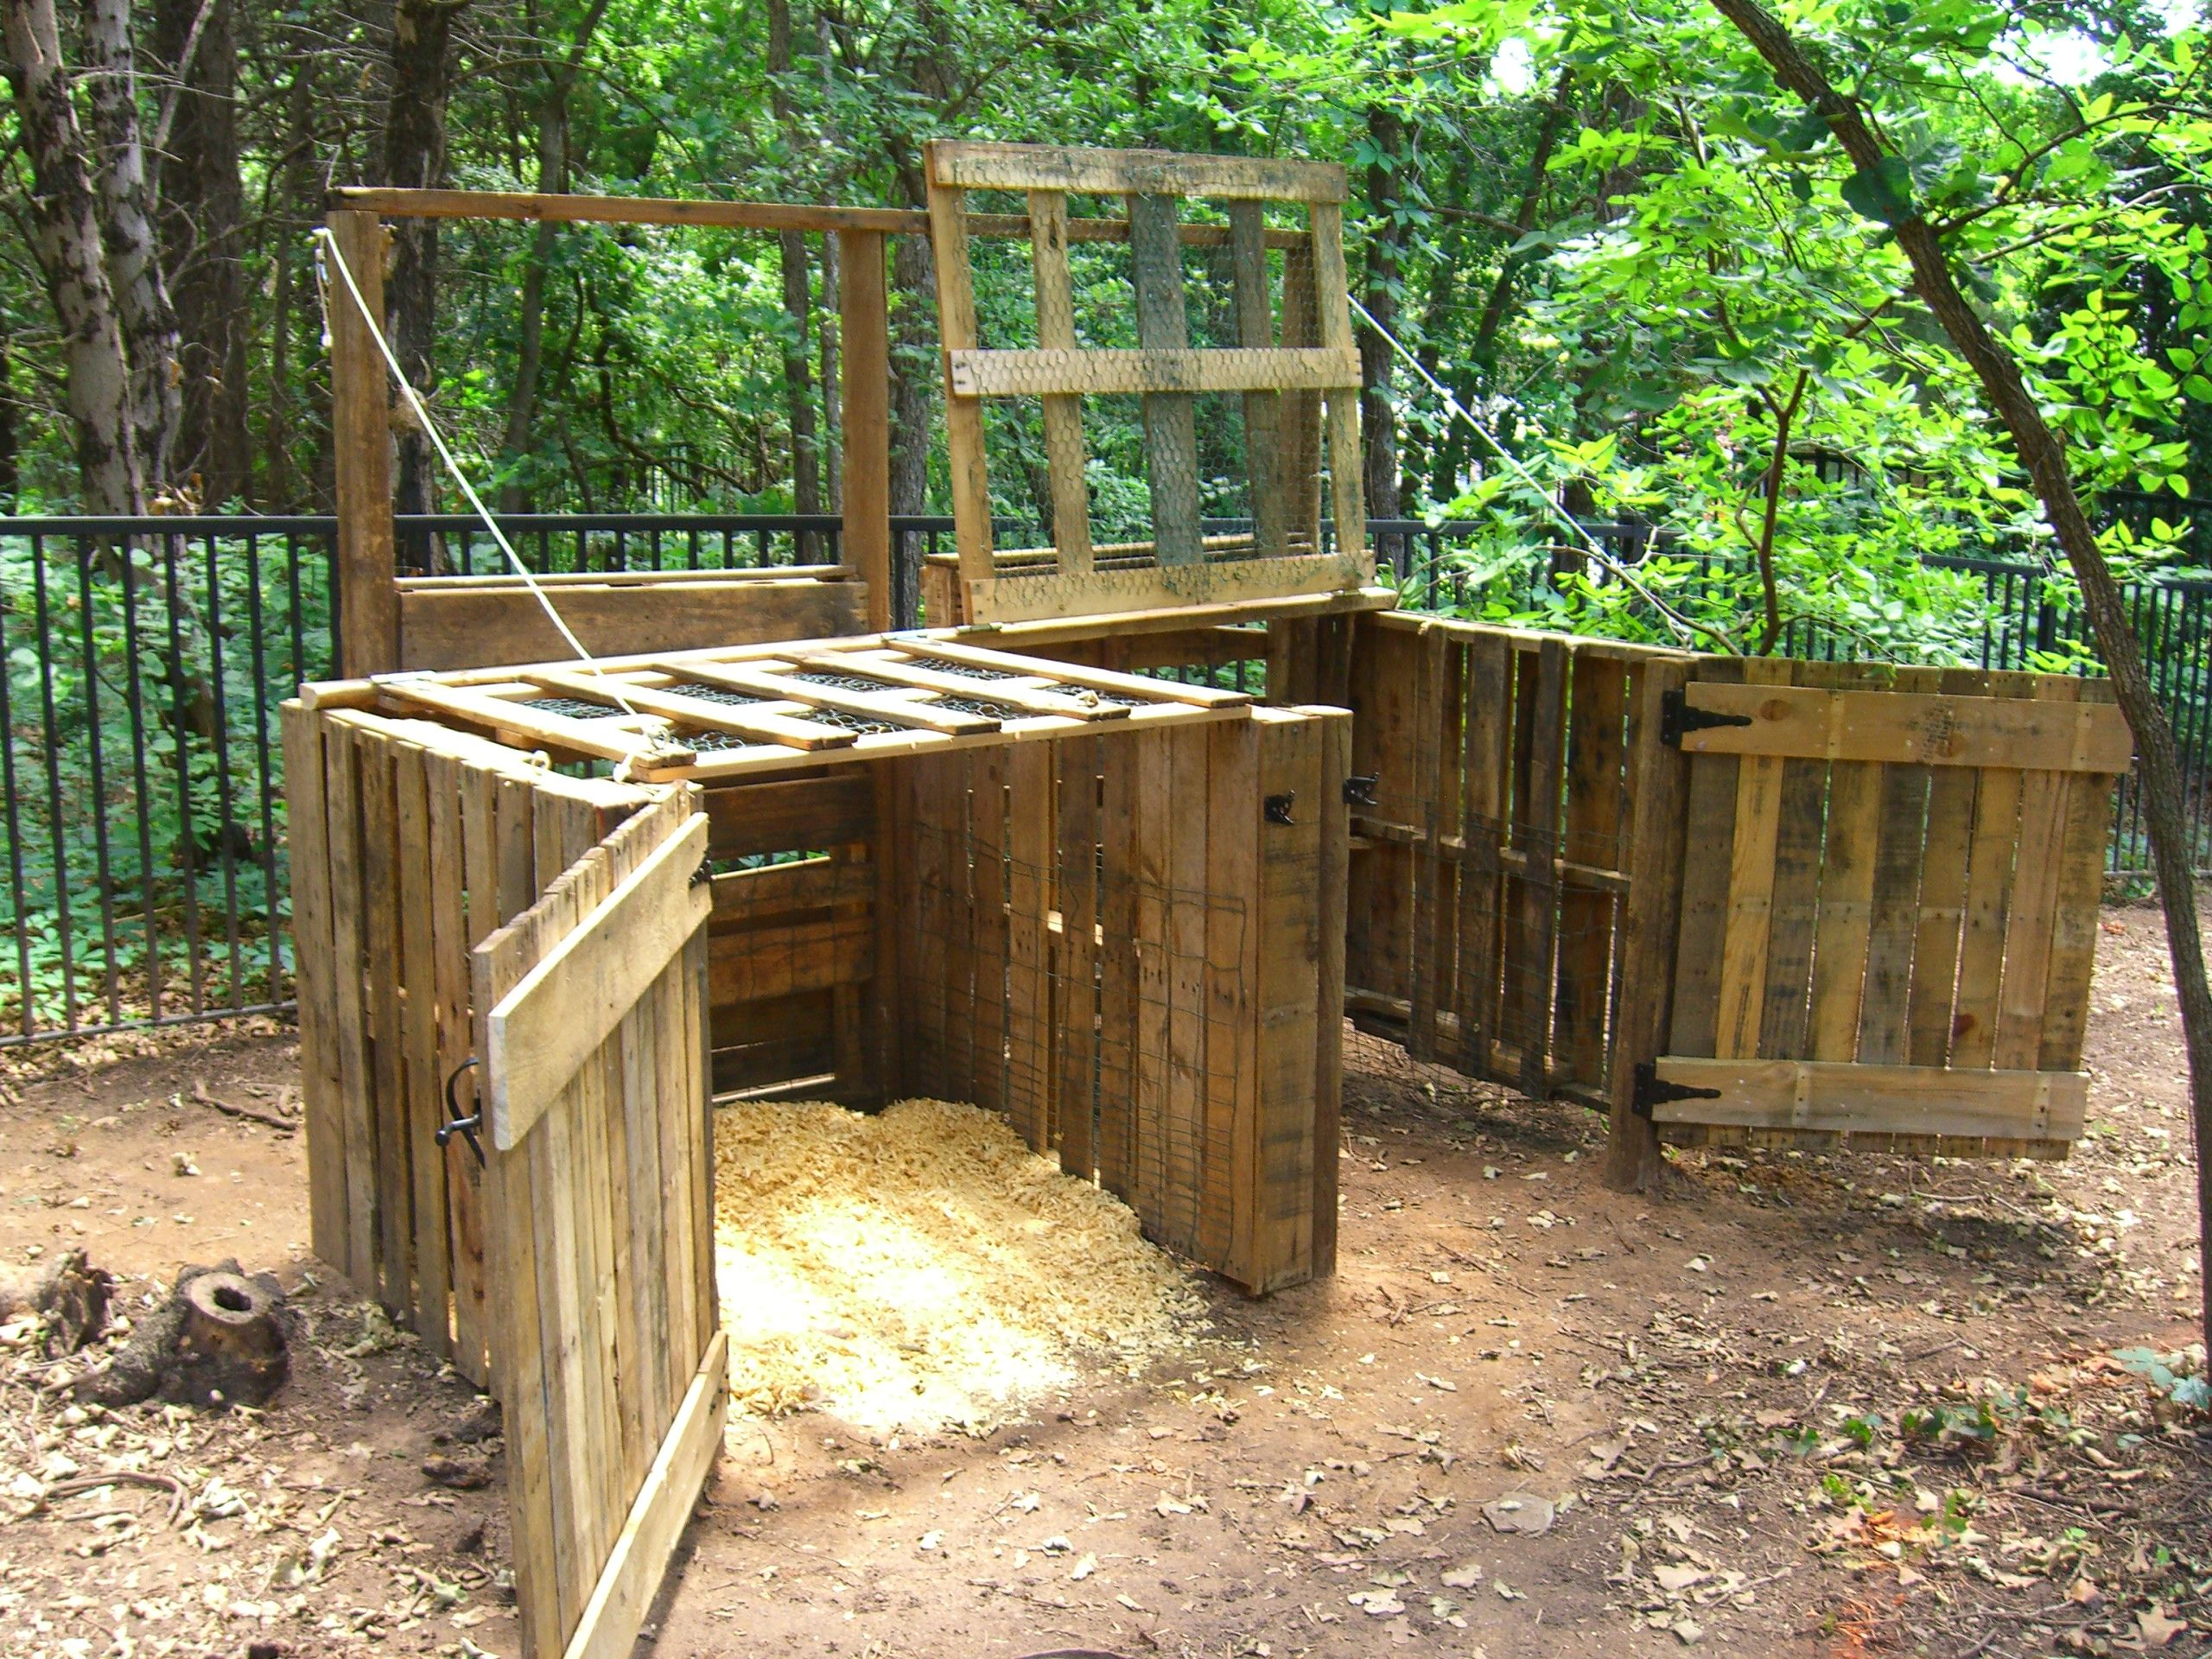 pallet compost bins wonder if they u0027re bear proof prob not